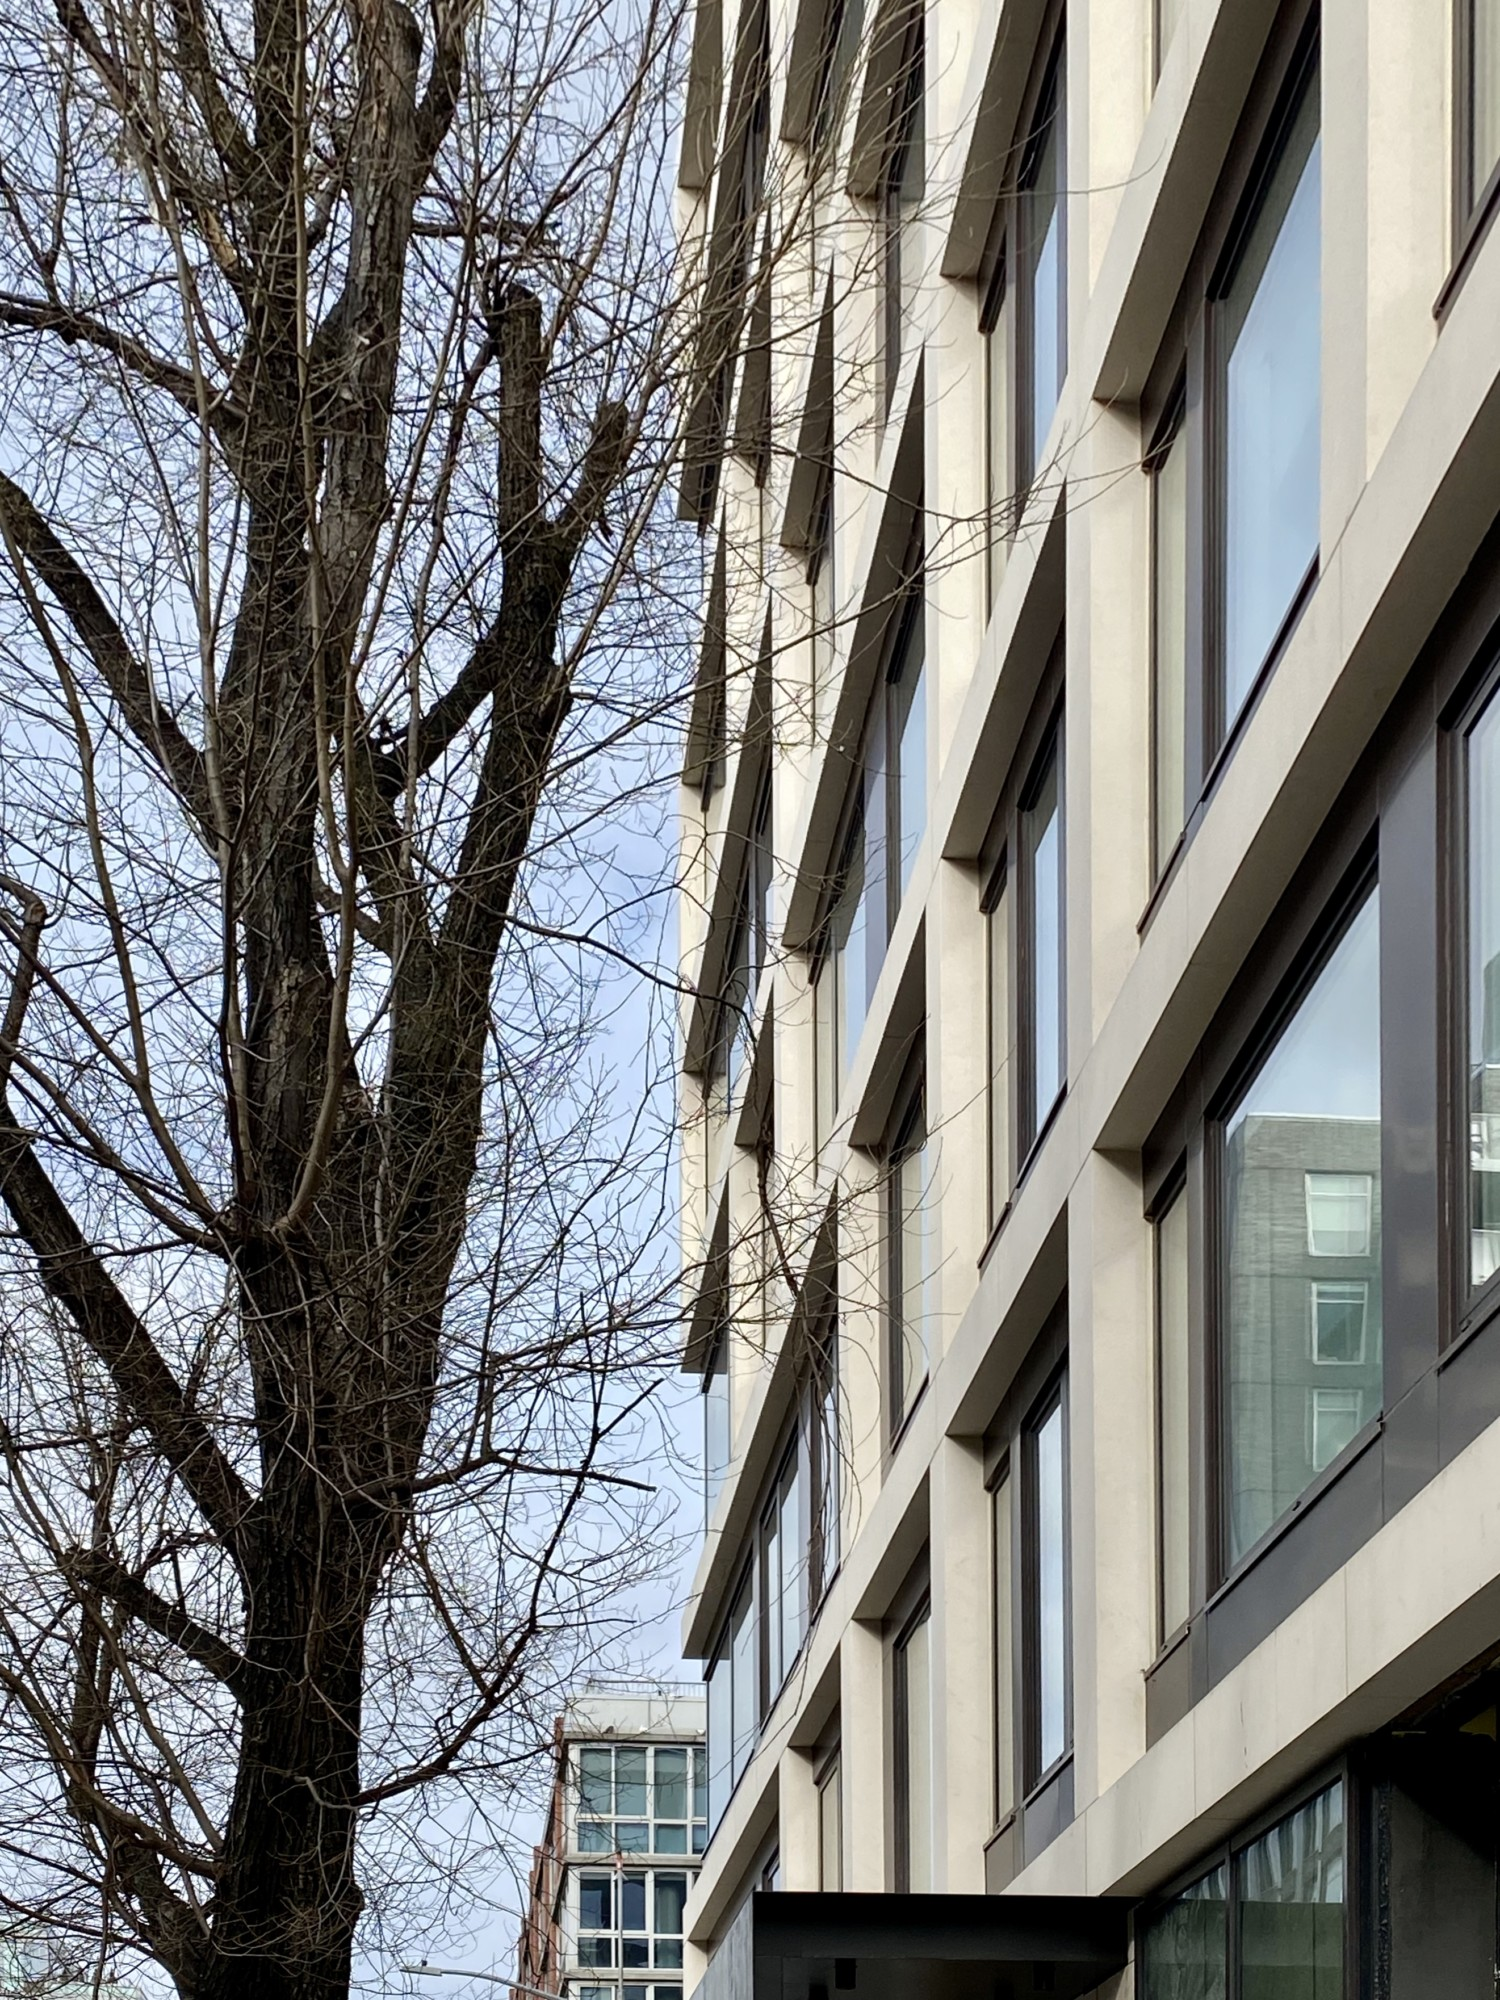 How to Evaluate a Residential Building in New York City